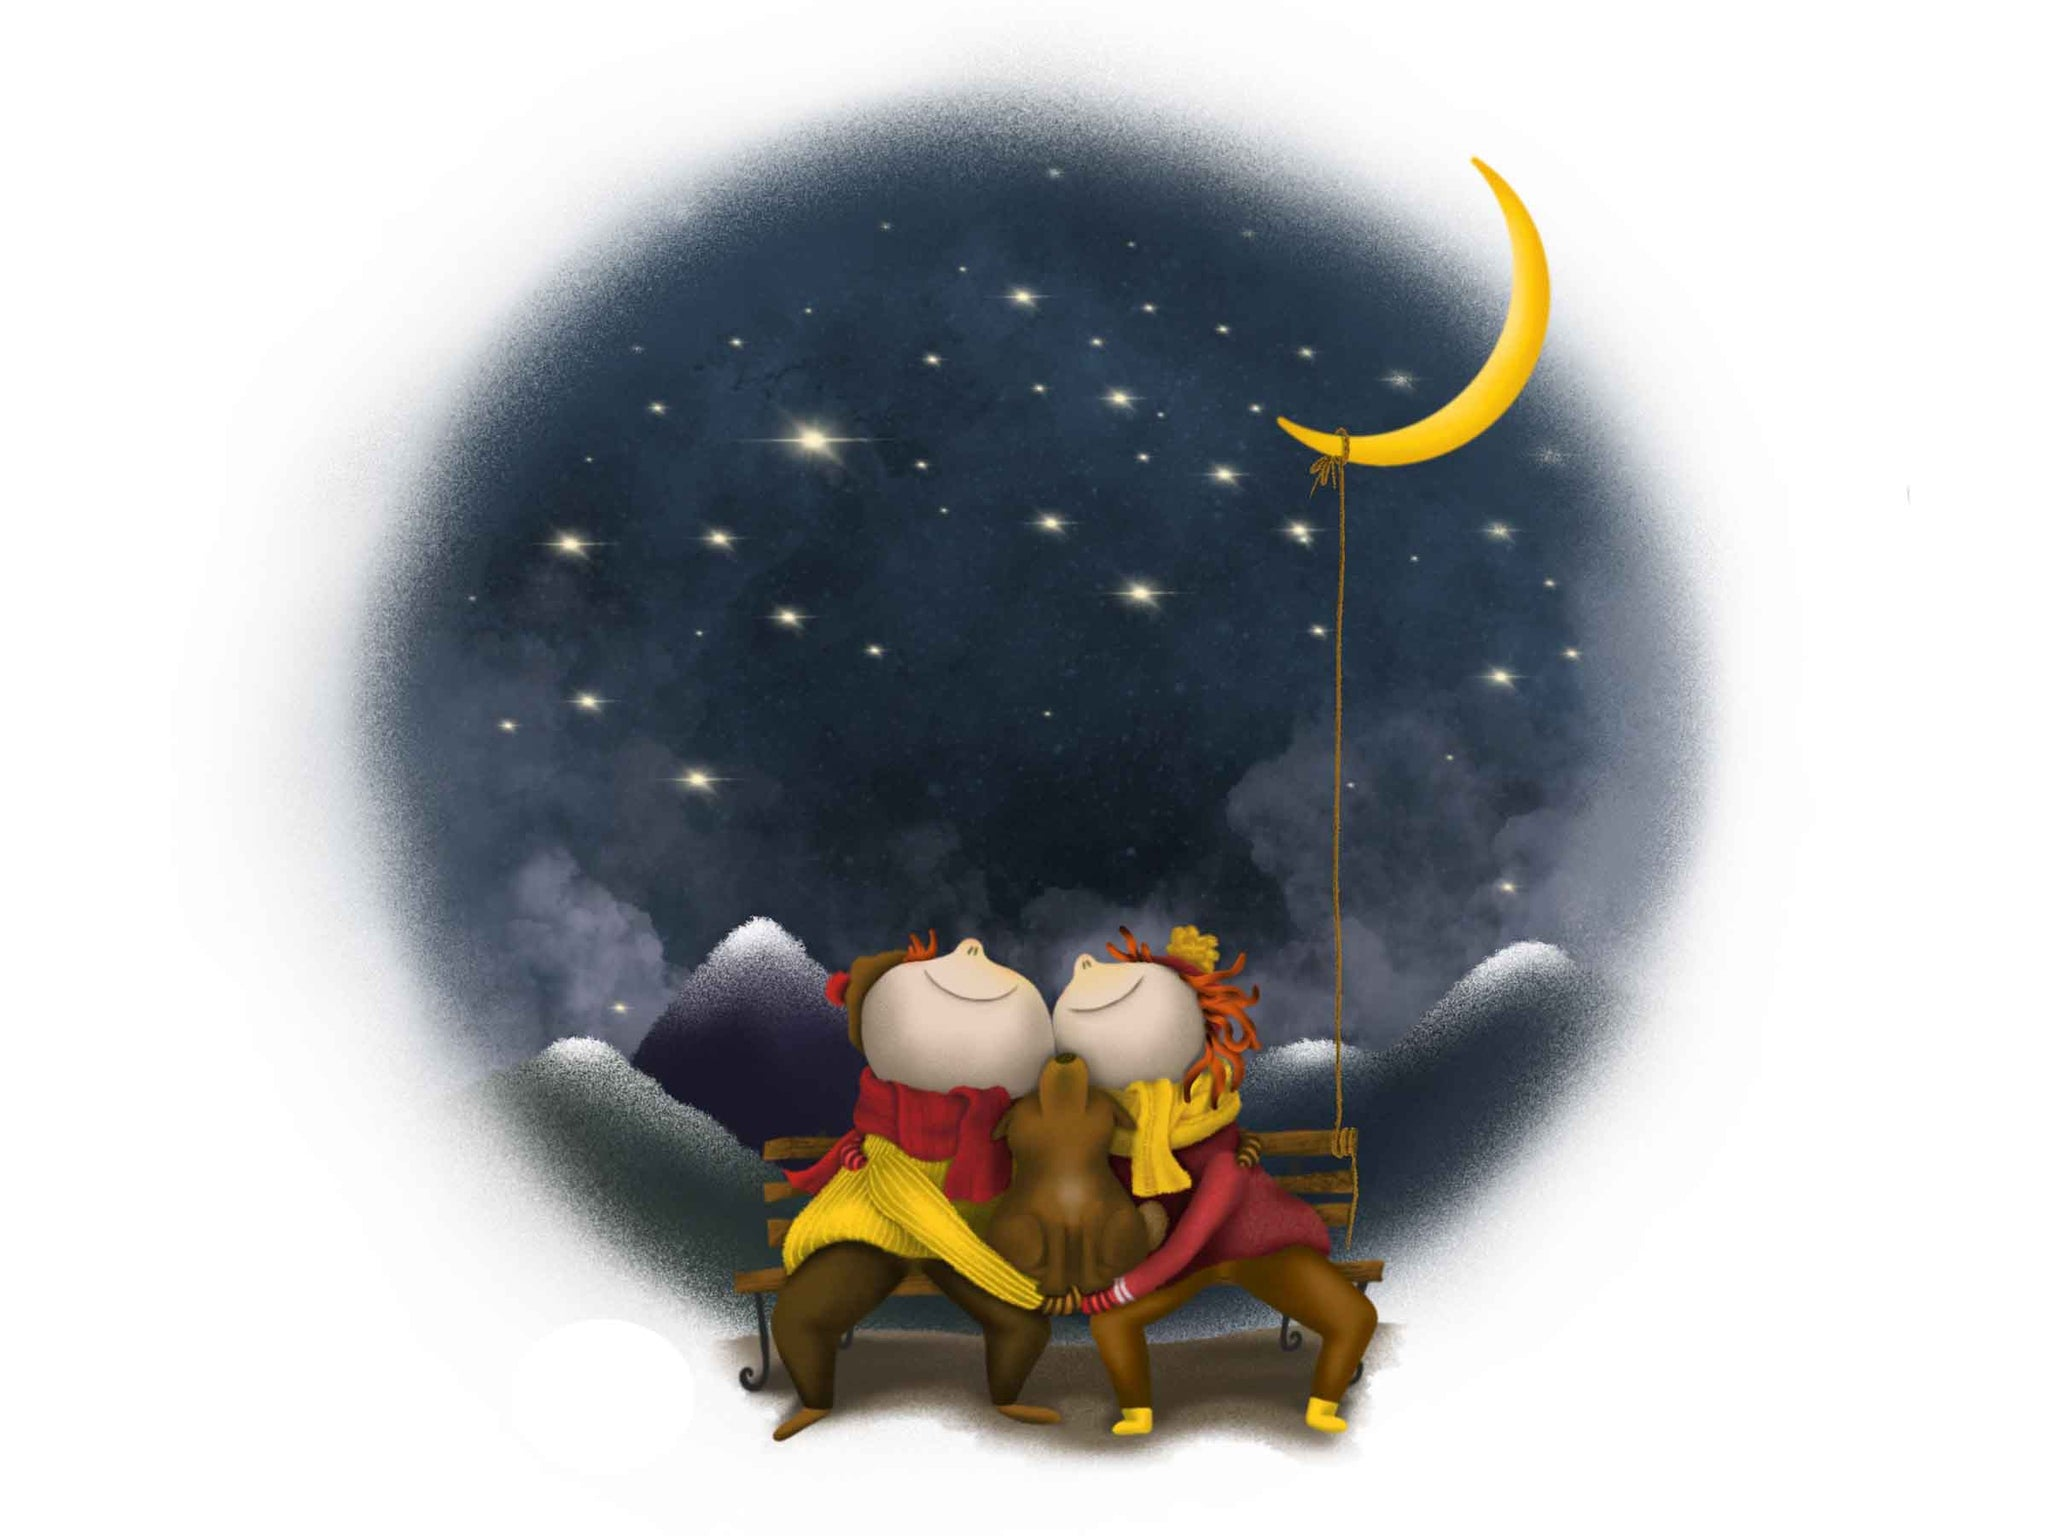 a cute illustration of a couple sitting on a bench, between them is a dog, they're all looking up at the stars, behind them are hills, the moon is tied to the bench with a rope